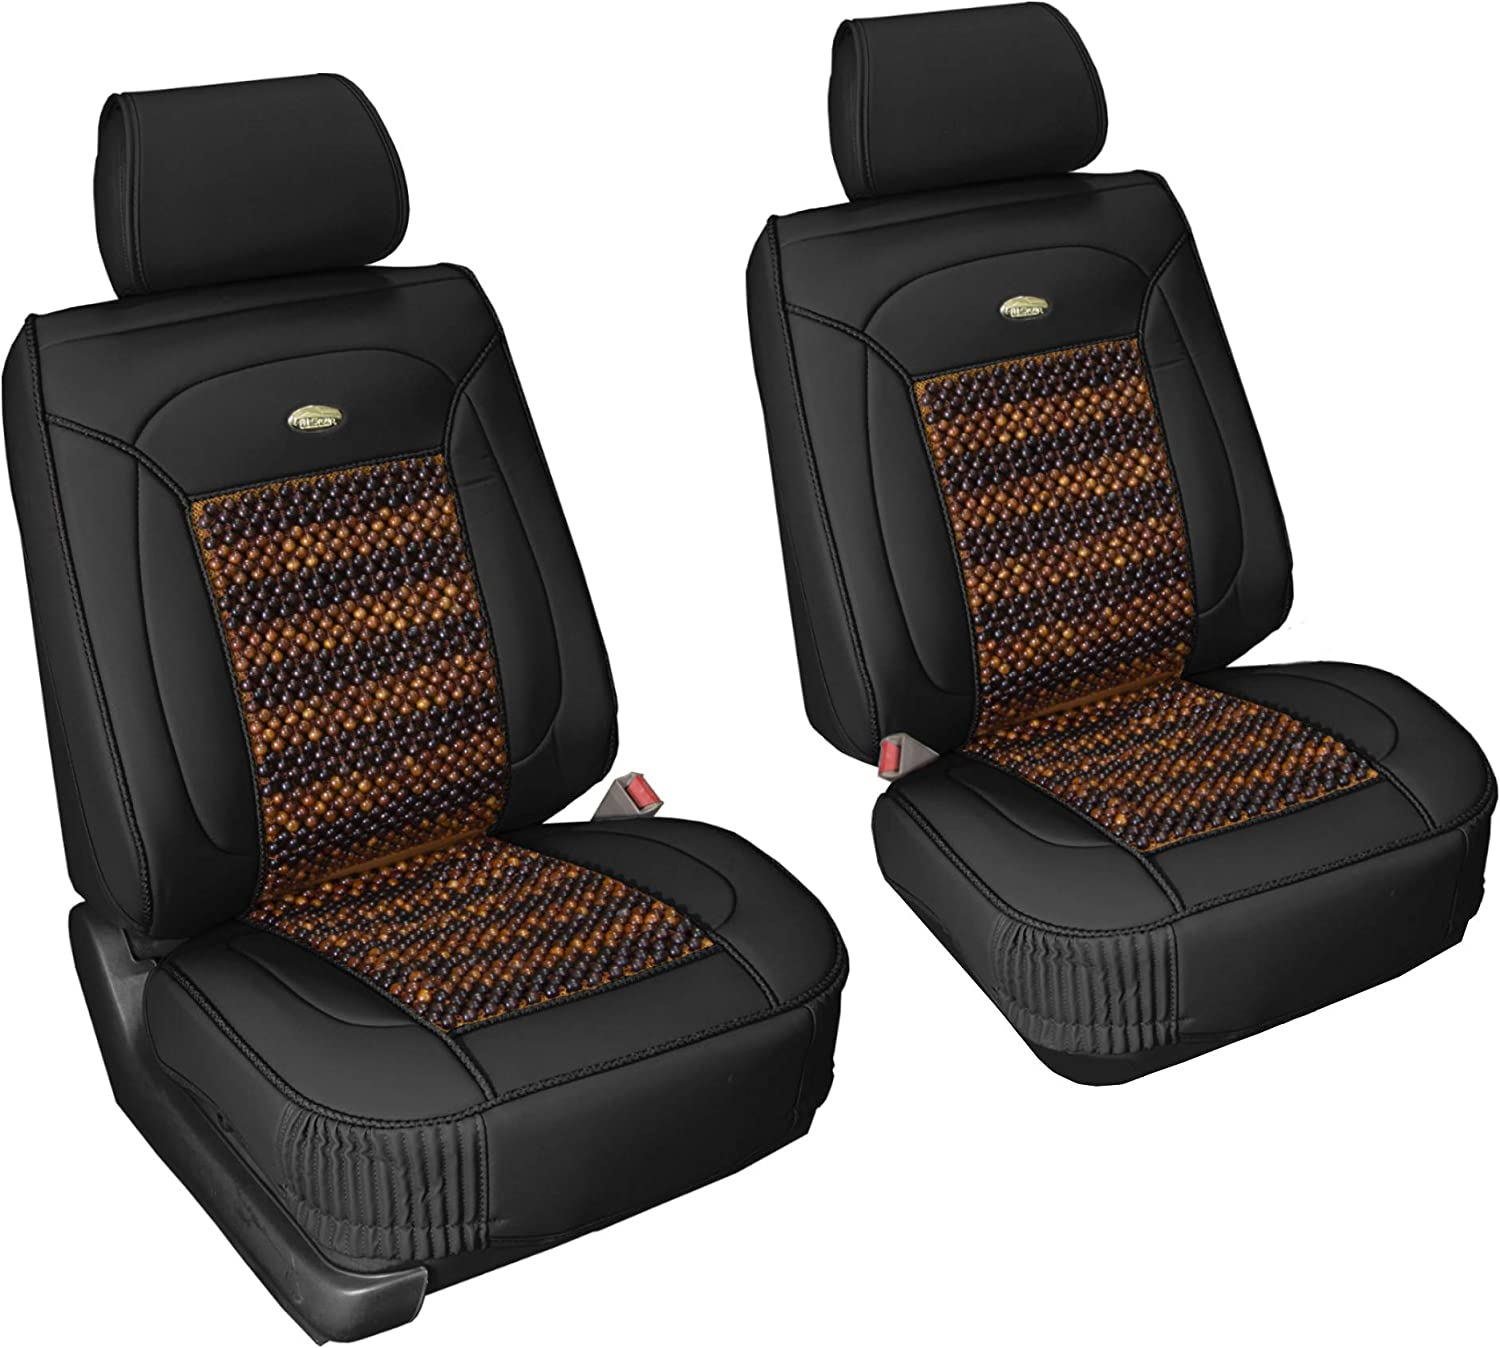 FH Group PU203102 Premium Leather Seat Leather Cushion Pad Seat Covers Black Color w. Cooling Rosewood Beads-Fit Most Car, Truck, SUV, or Van